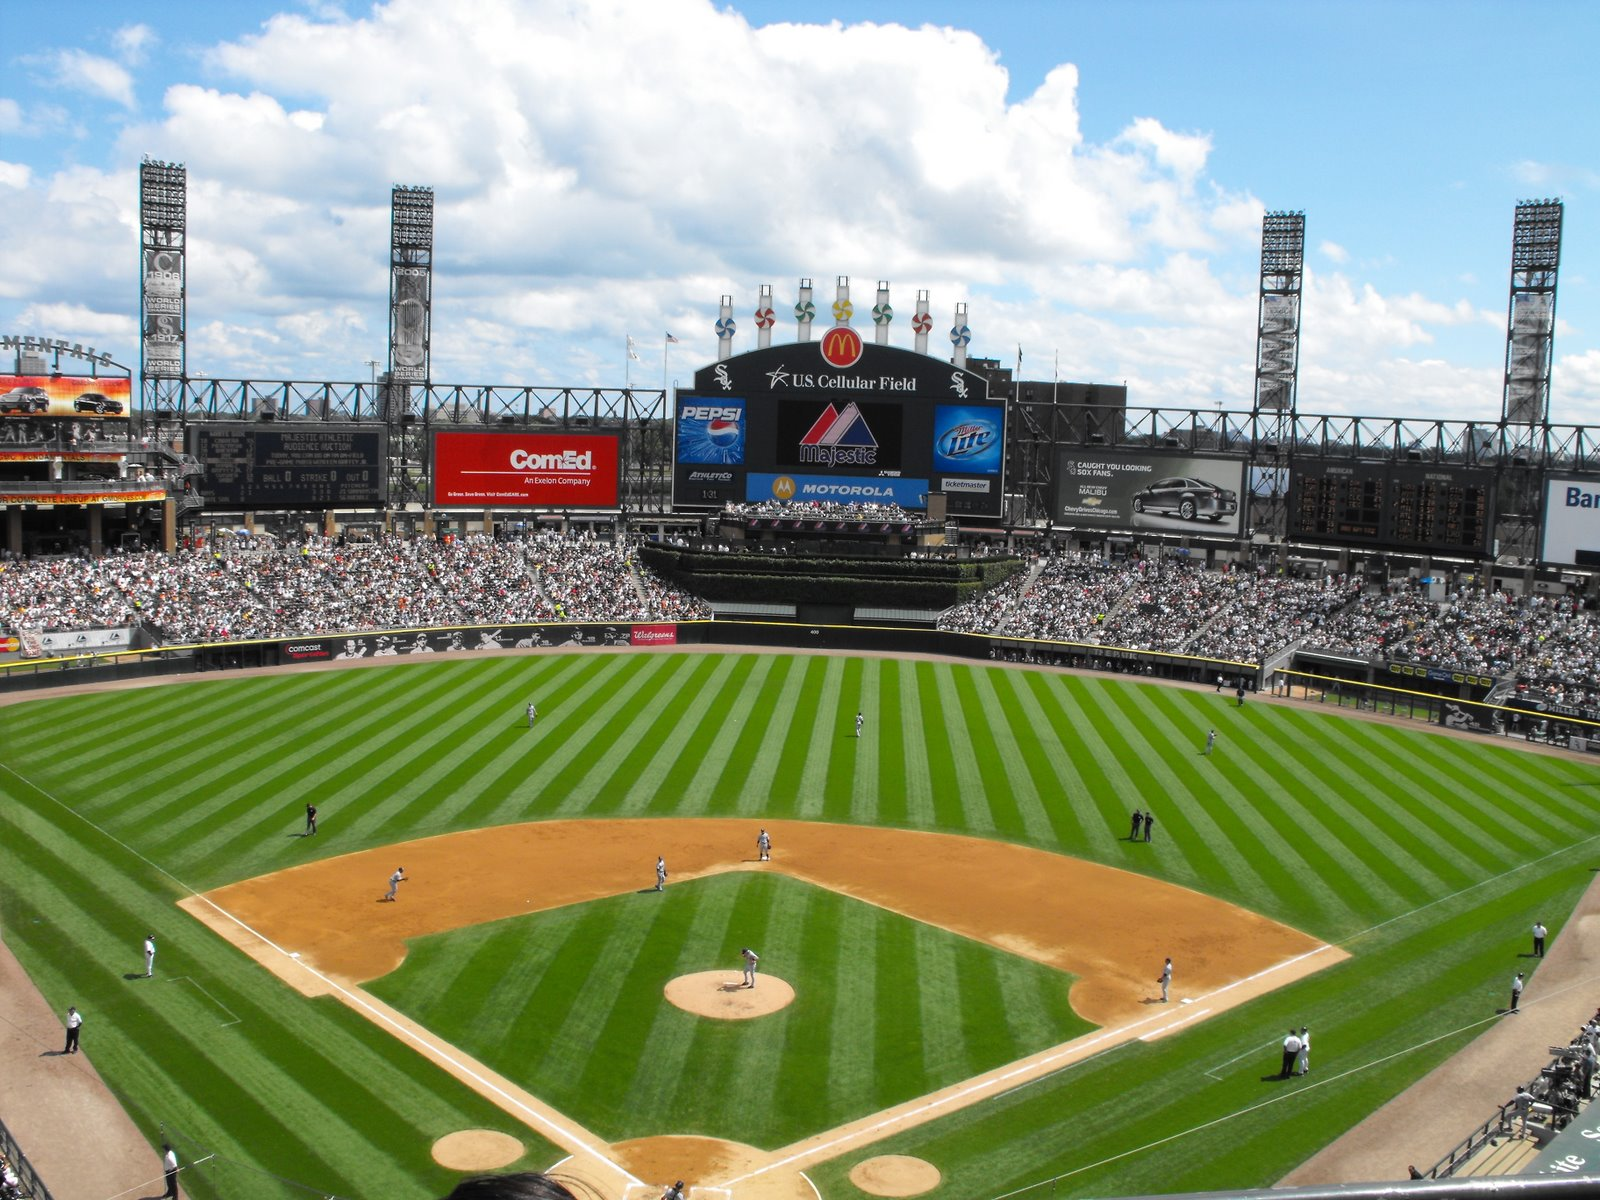 US Cellular Field by wkdown